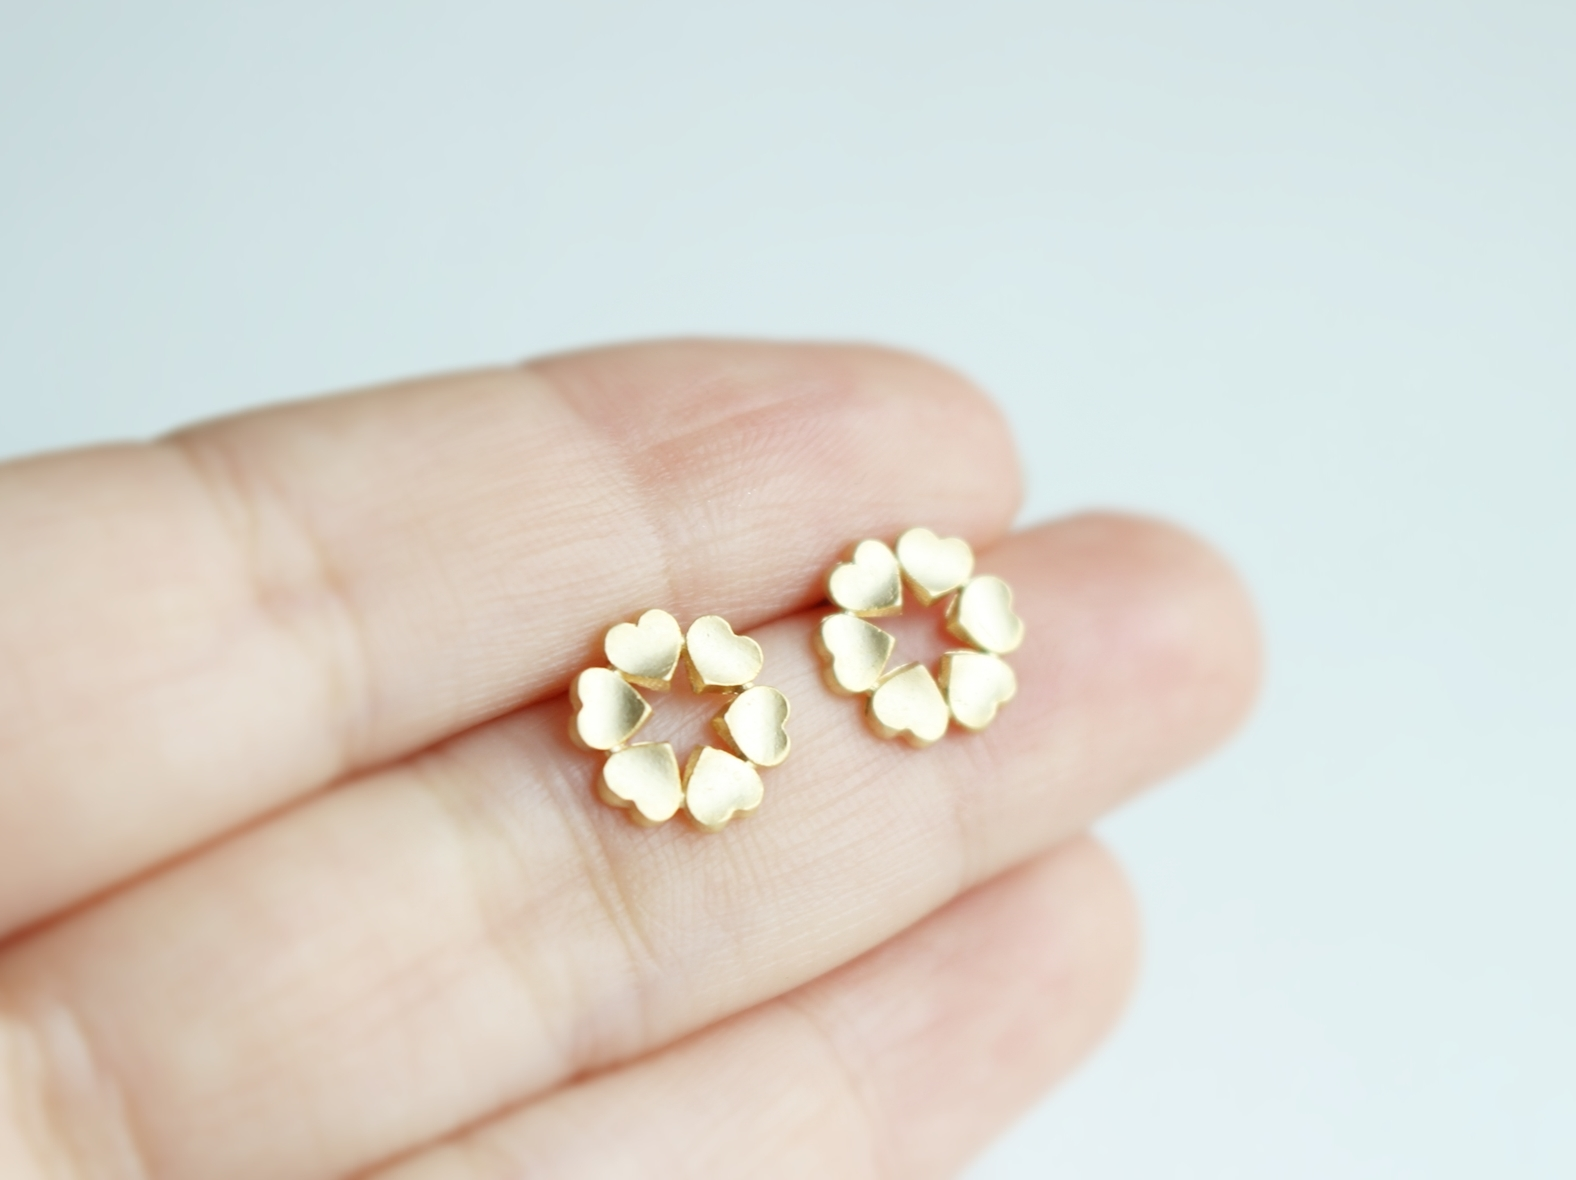 hot buy new for simple l arrival hd items earrings gold studs aliexpresscom popular cool stud